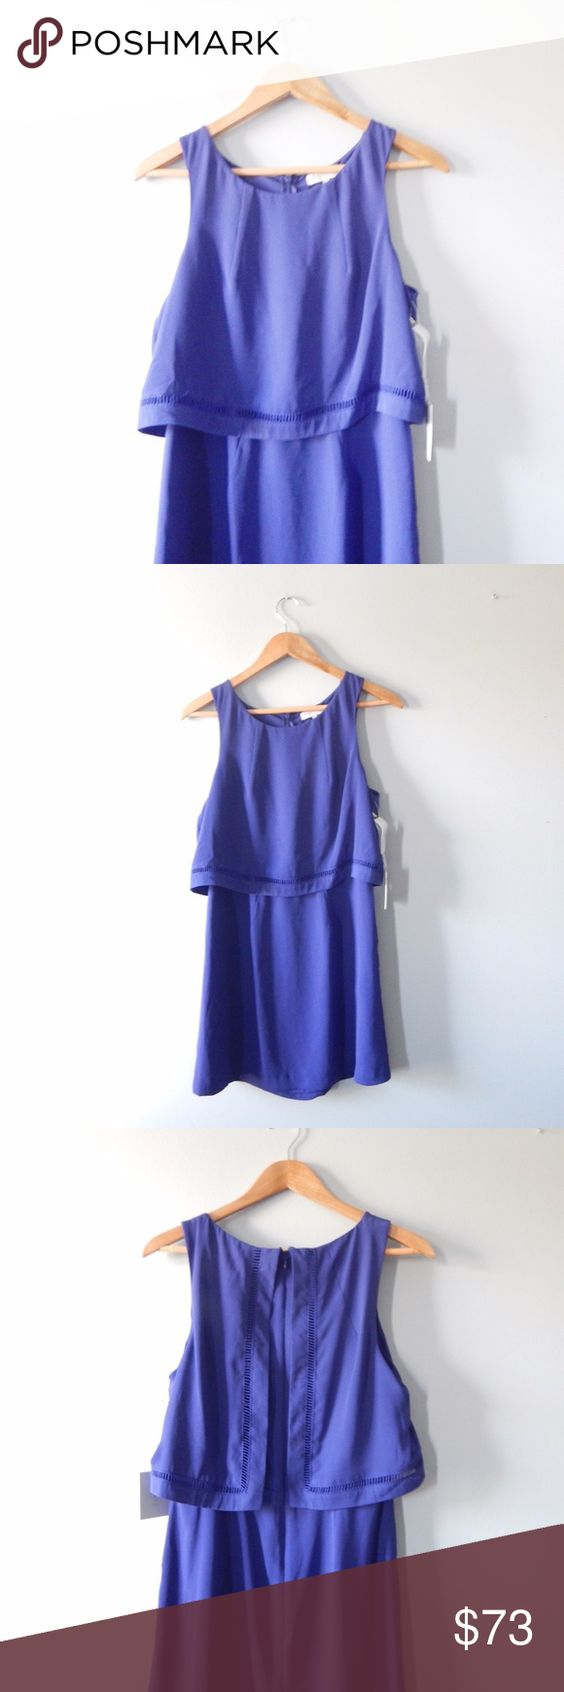 1.STATE Popover Dress 1.STATE from Nordstrom ladder stitch Popover dress size medium. Purple/navy blue. I absolutely adore this dress, just wishing it would fit me! True to size. Can post measurements upon request. 💐 1.STATE Dresses Mini